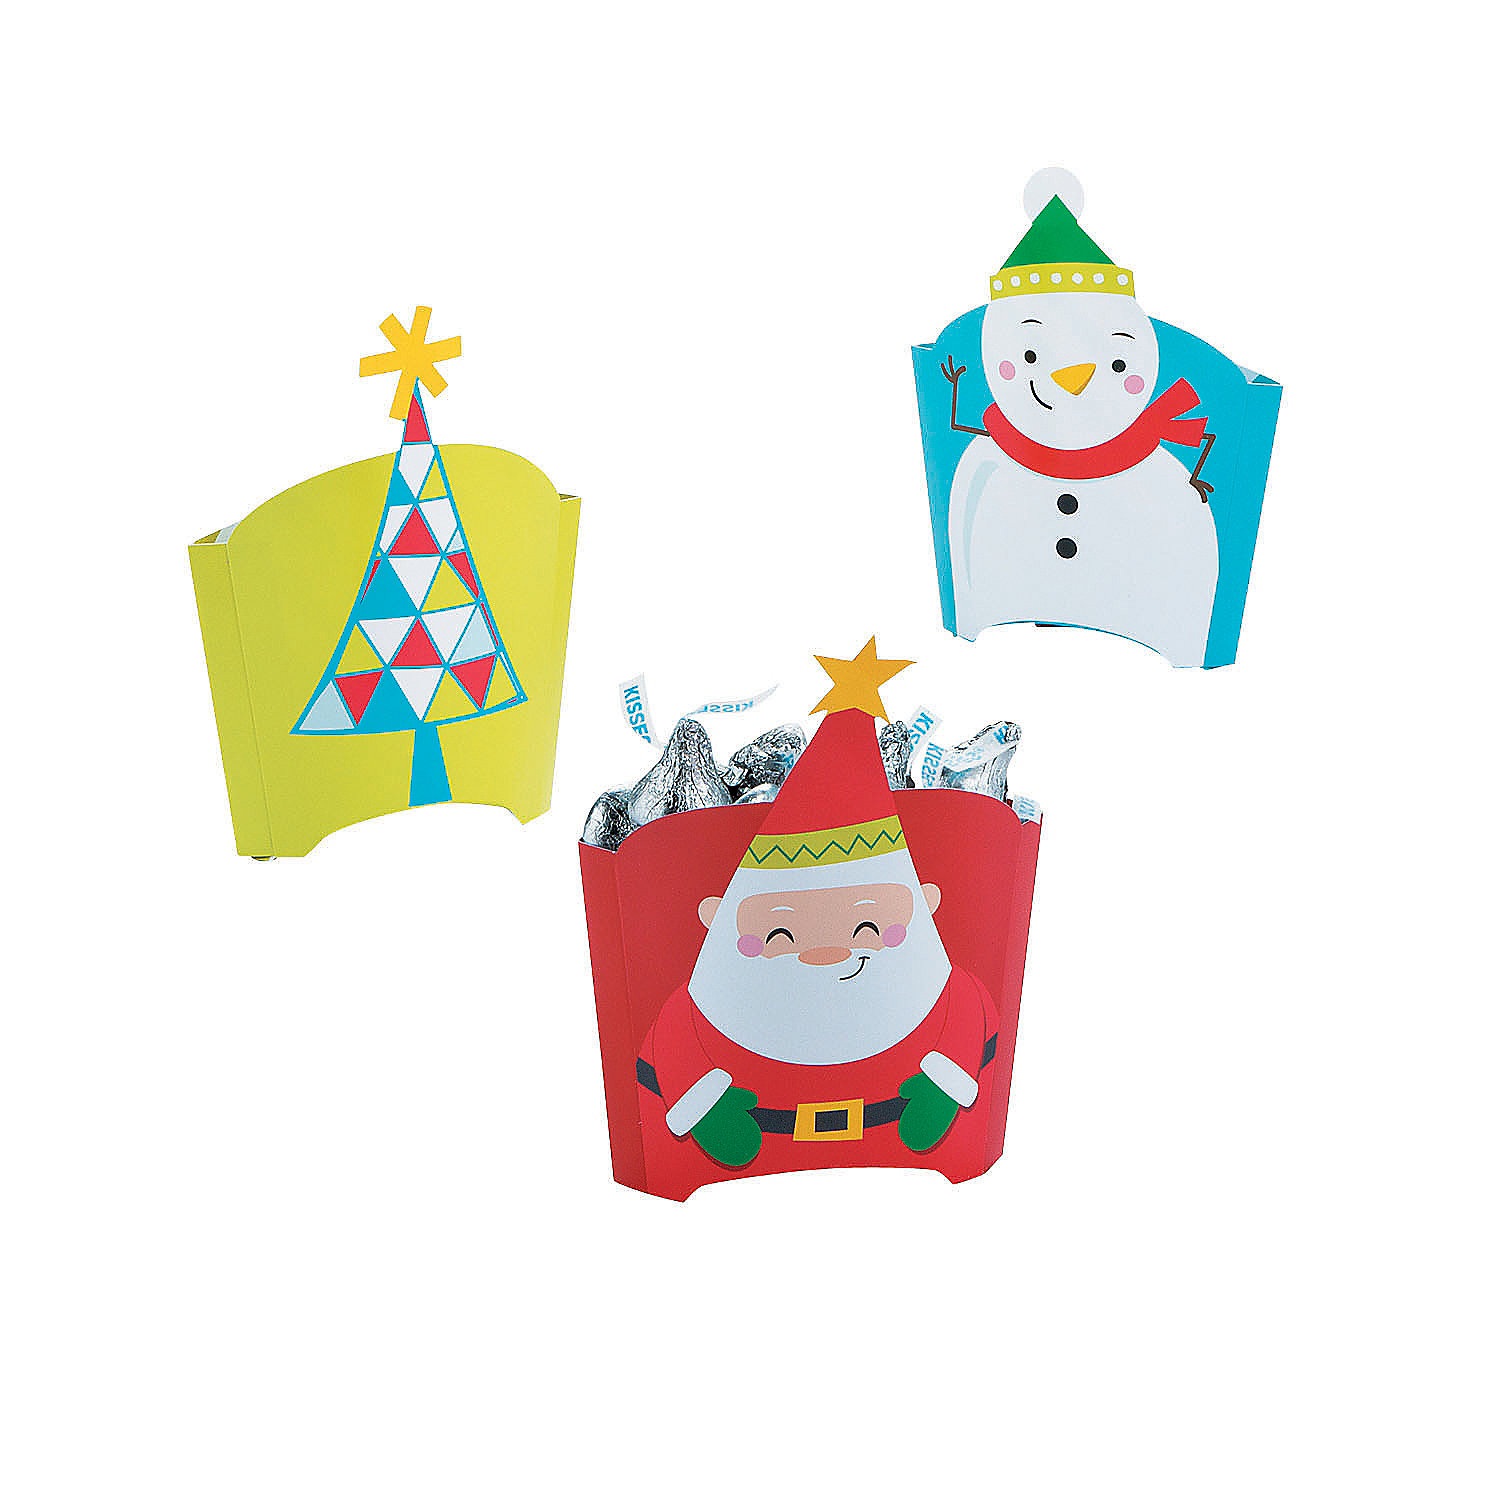 IN-13778905 Pop-Up Christmas Treat Containers Per Dozen 2PK